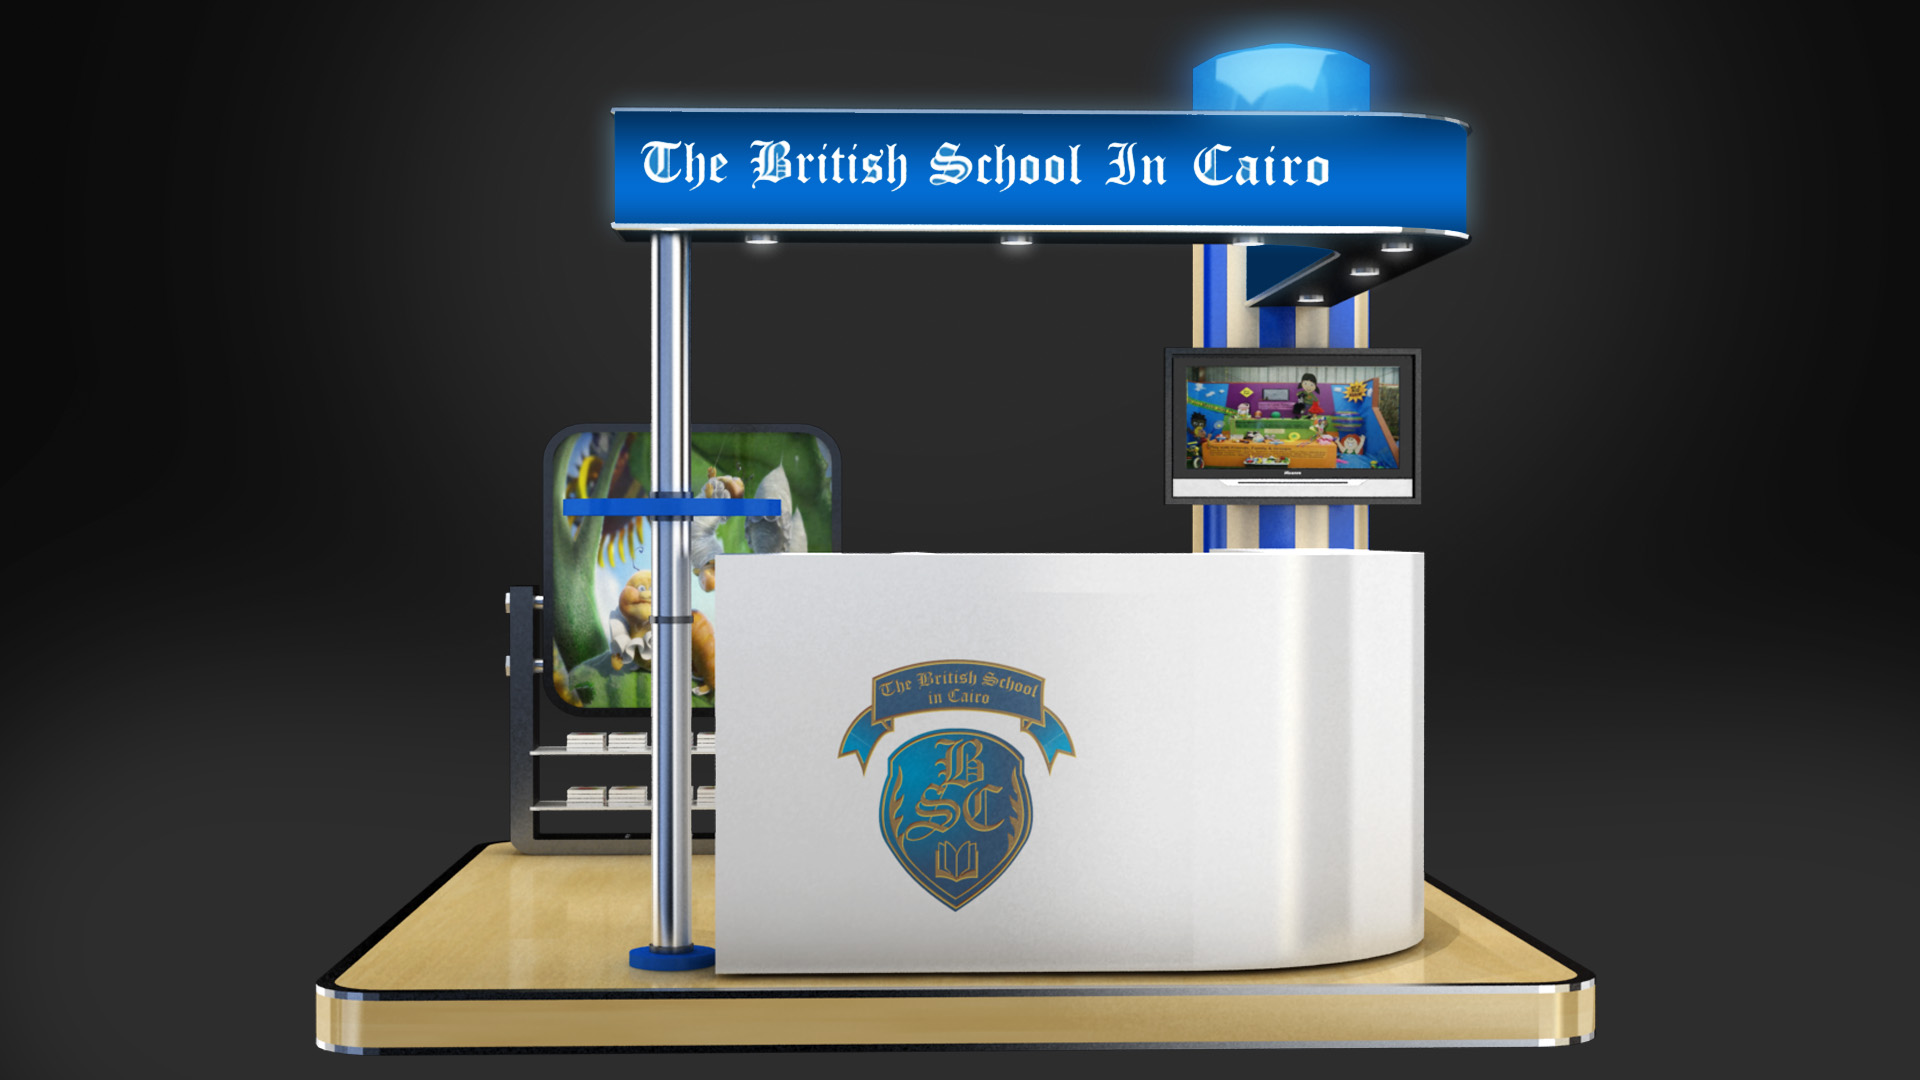 Bsc school Booth Design by moohhamm on deviantART